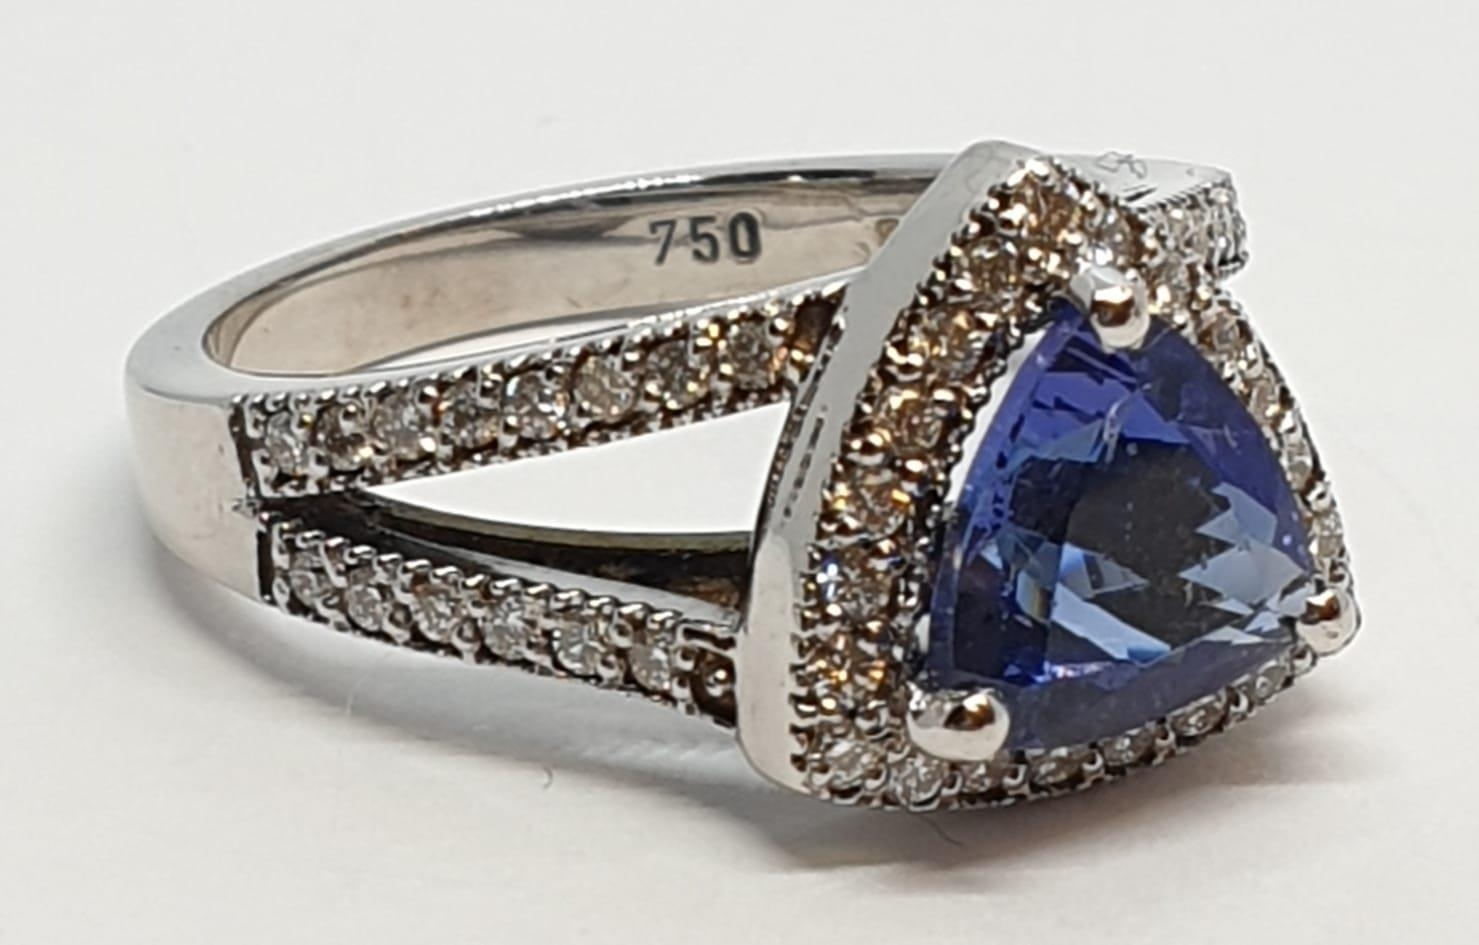 18CT WHITE GOLD RING WITH TRIANGULAR TANZANITE CENTRE AND DIAMONDS ON SHOULDERS, WEIGHT 7G AND - Image 2 of 10